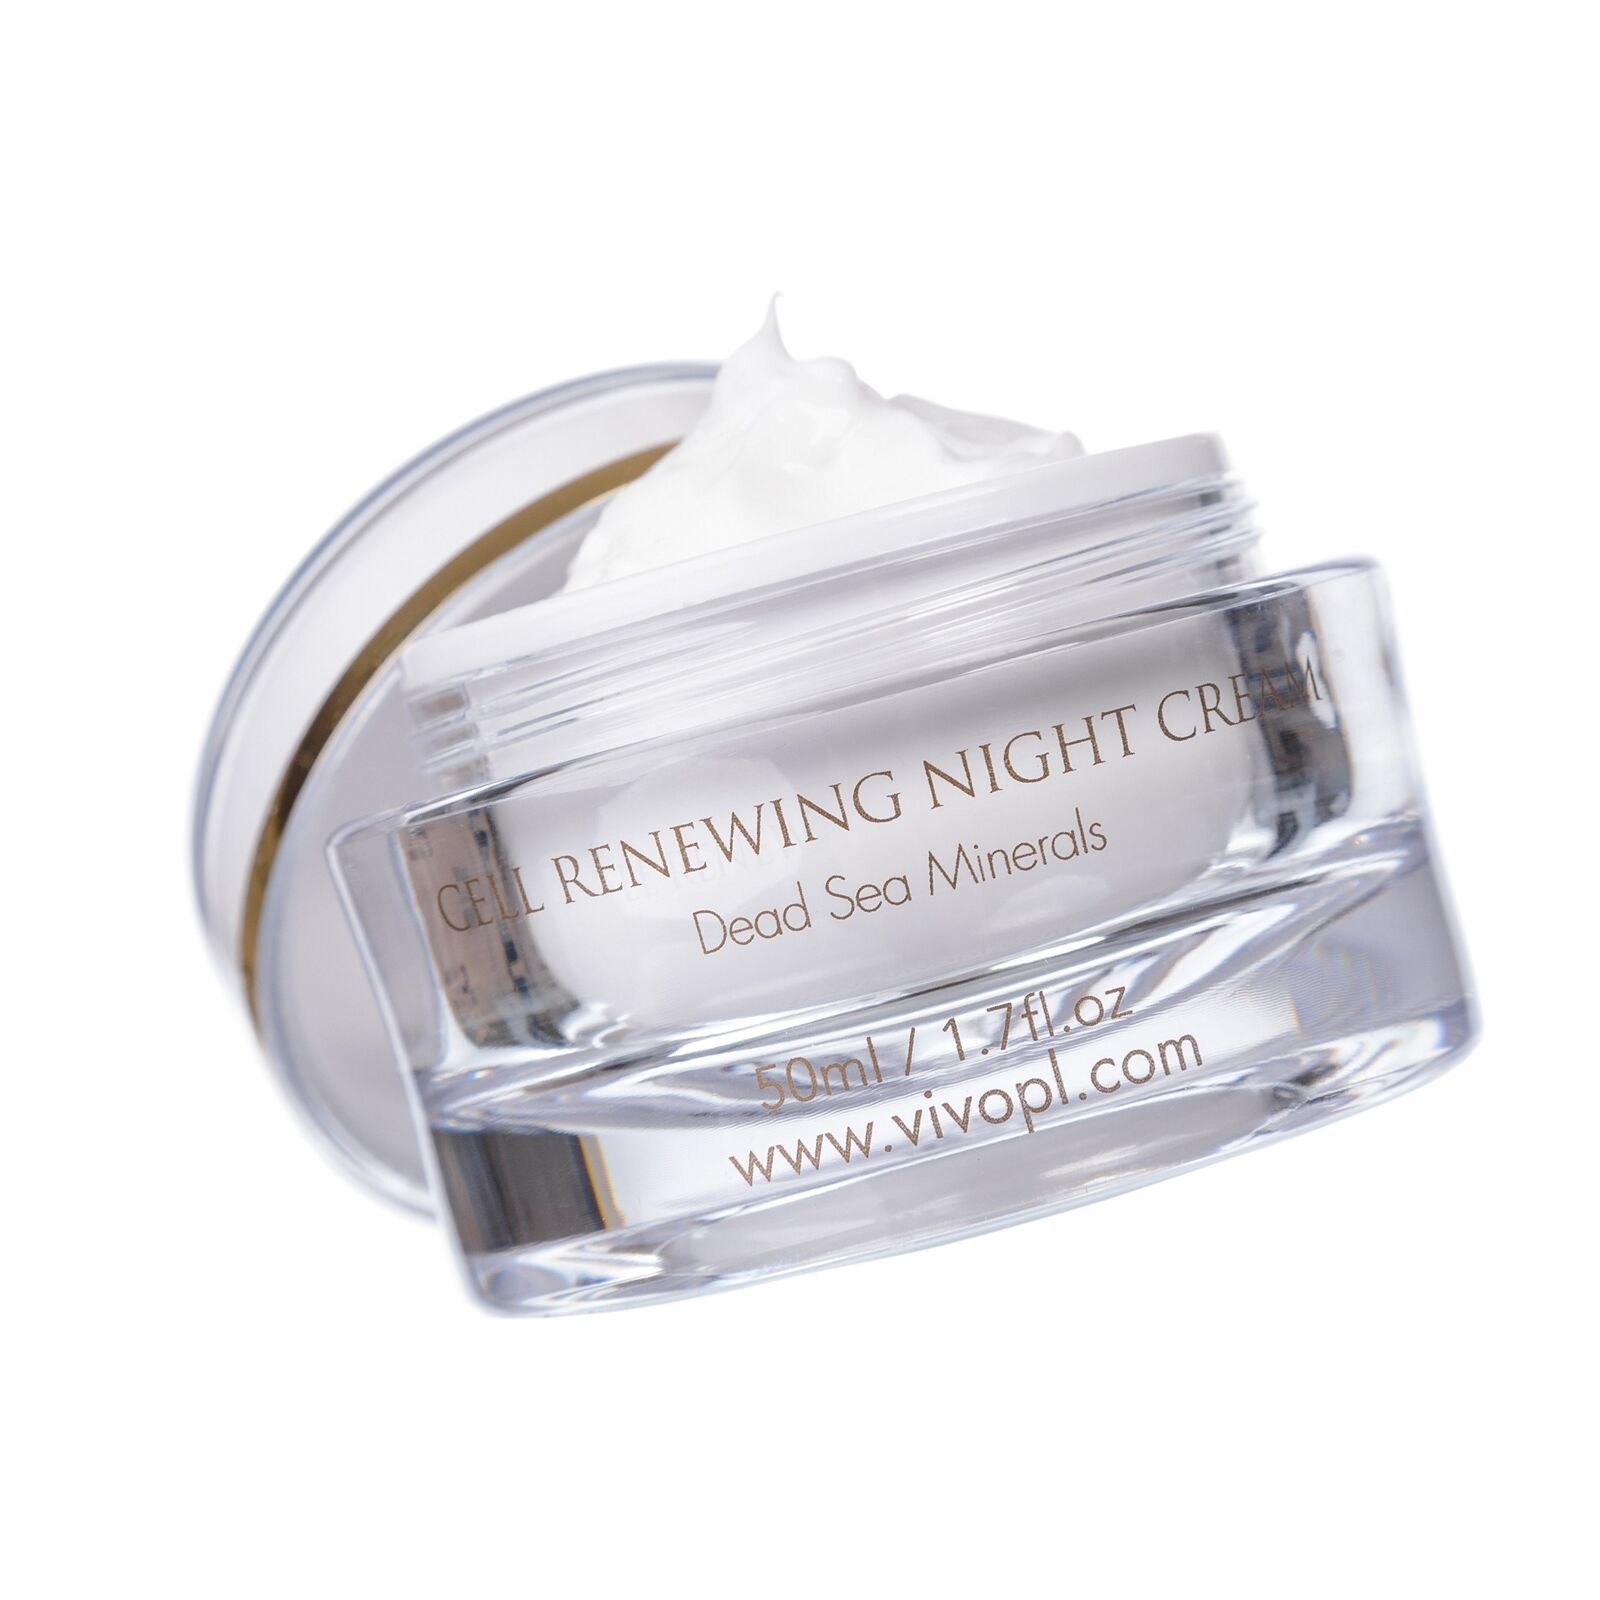 Vivo Per Lei Cell Renewal Anti Aging Night Cream, Look Younger, Not Oily Or S...